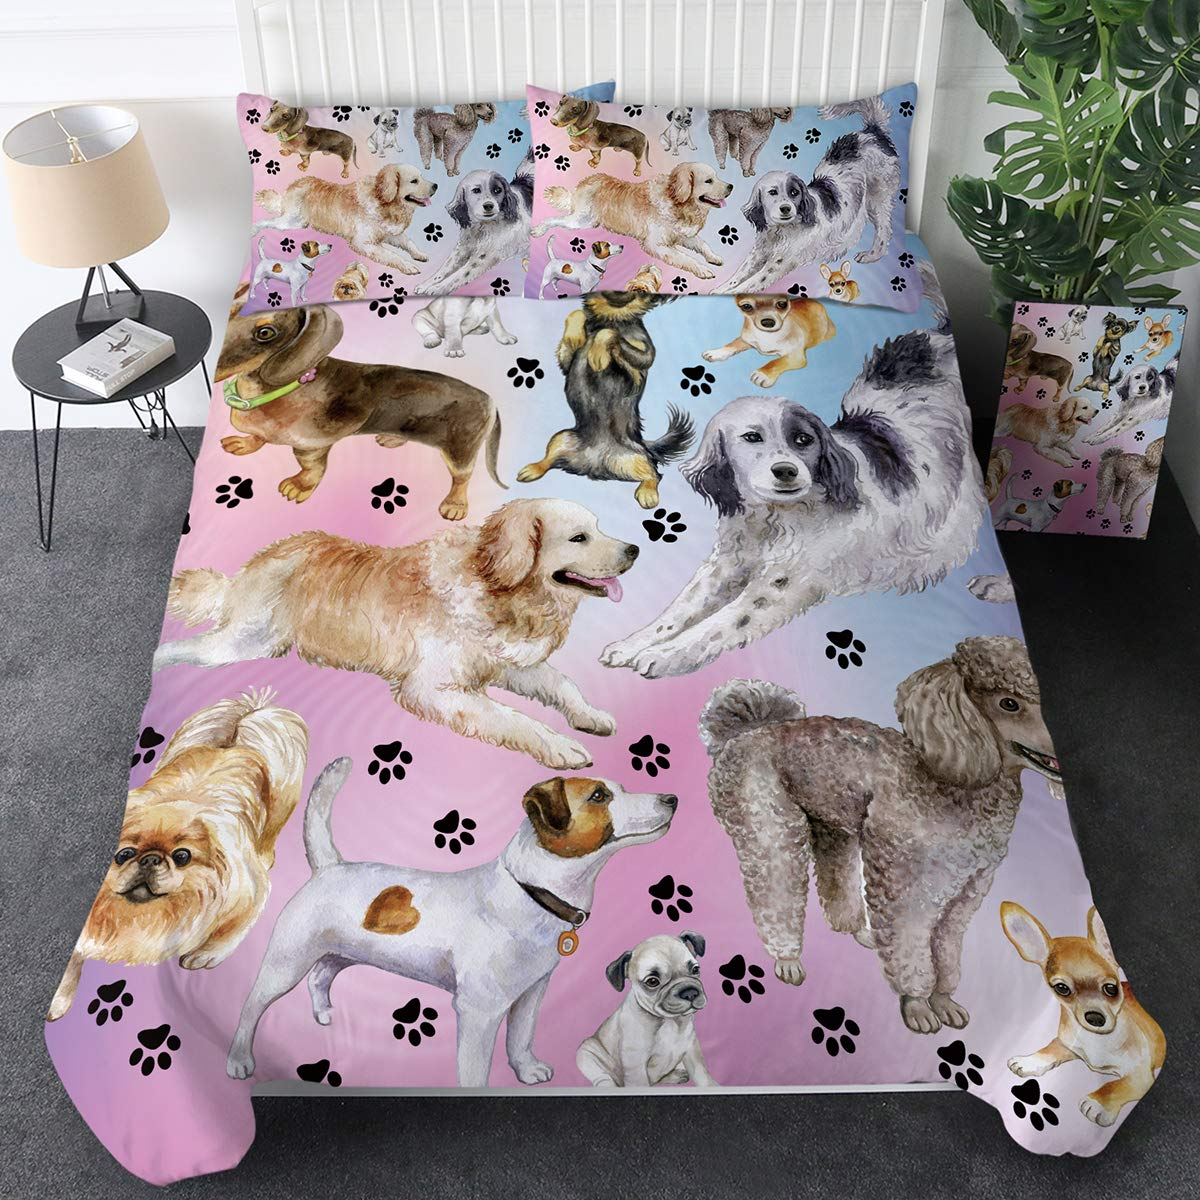 Sleepwish Puppy Dog Bedding Animals Duvet Cover Set 3 Pieces Comforter Quilt Cover Zipper Closure Corner Ties Dog Lover Microfiber Luxury Set (Pastel Purple Dog Paw Print,Twin)